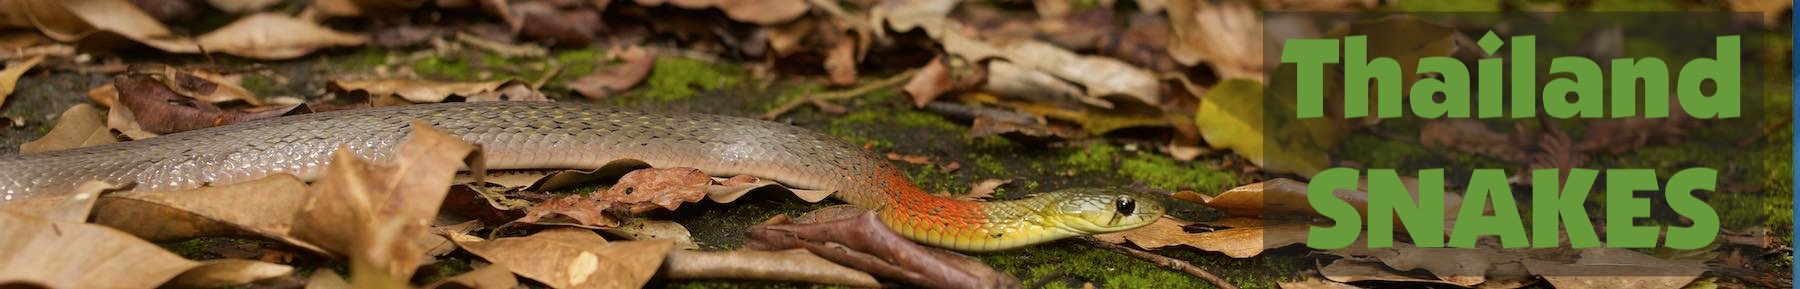 Thailand Snakes | Venomous | Photos | Videos | ID